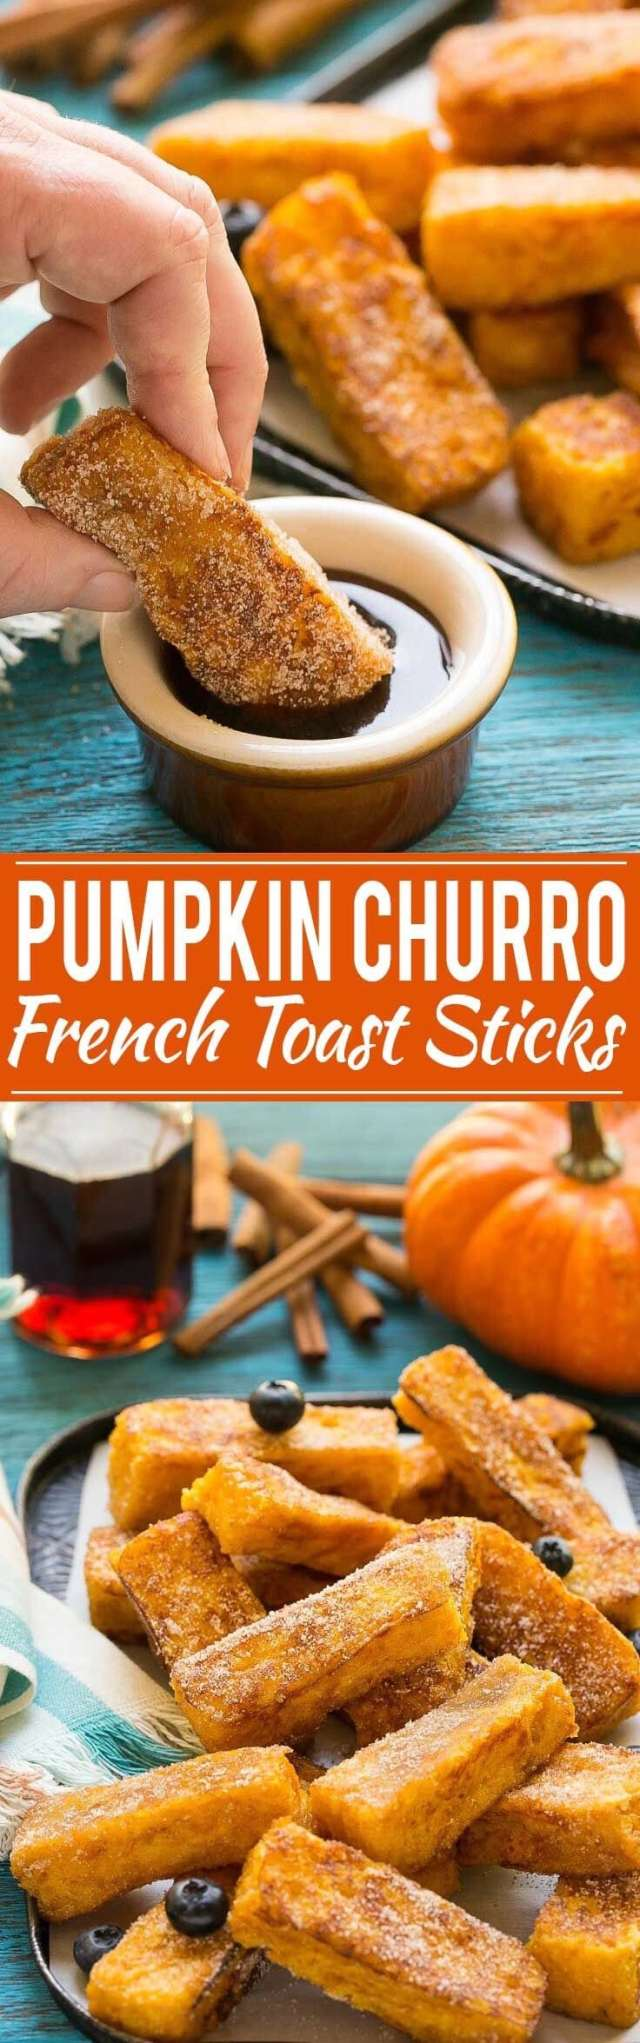 Pumpkin Spice Recipes: Pumpkin Churro French Toast Sticks